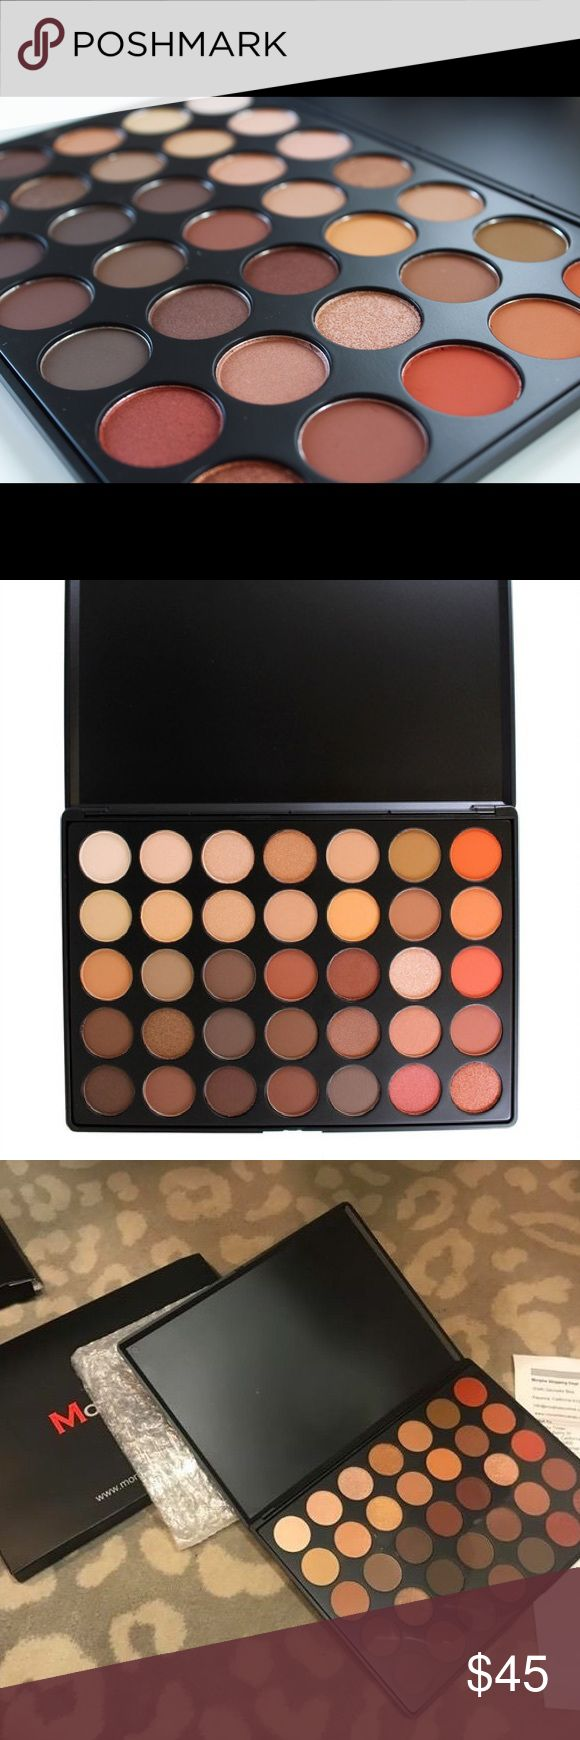 💯% Authentic Morphe 350 Nature Glow Palette Original super popular and always sold out or backordered Morphe 350 Nature Glow Eyeshadow palette 💕 Brand new in original box. Will ship with extra care and bubble wrap. Price firm, no trades. Morphe Brushes Makeup Eyeshadow